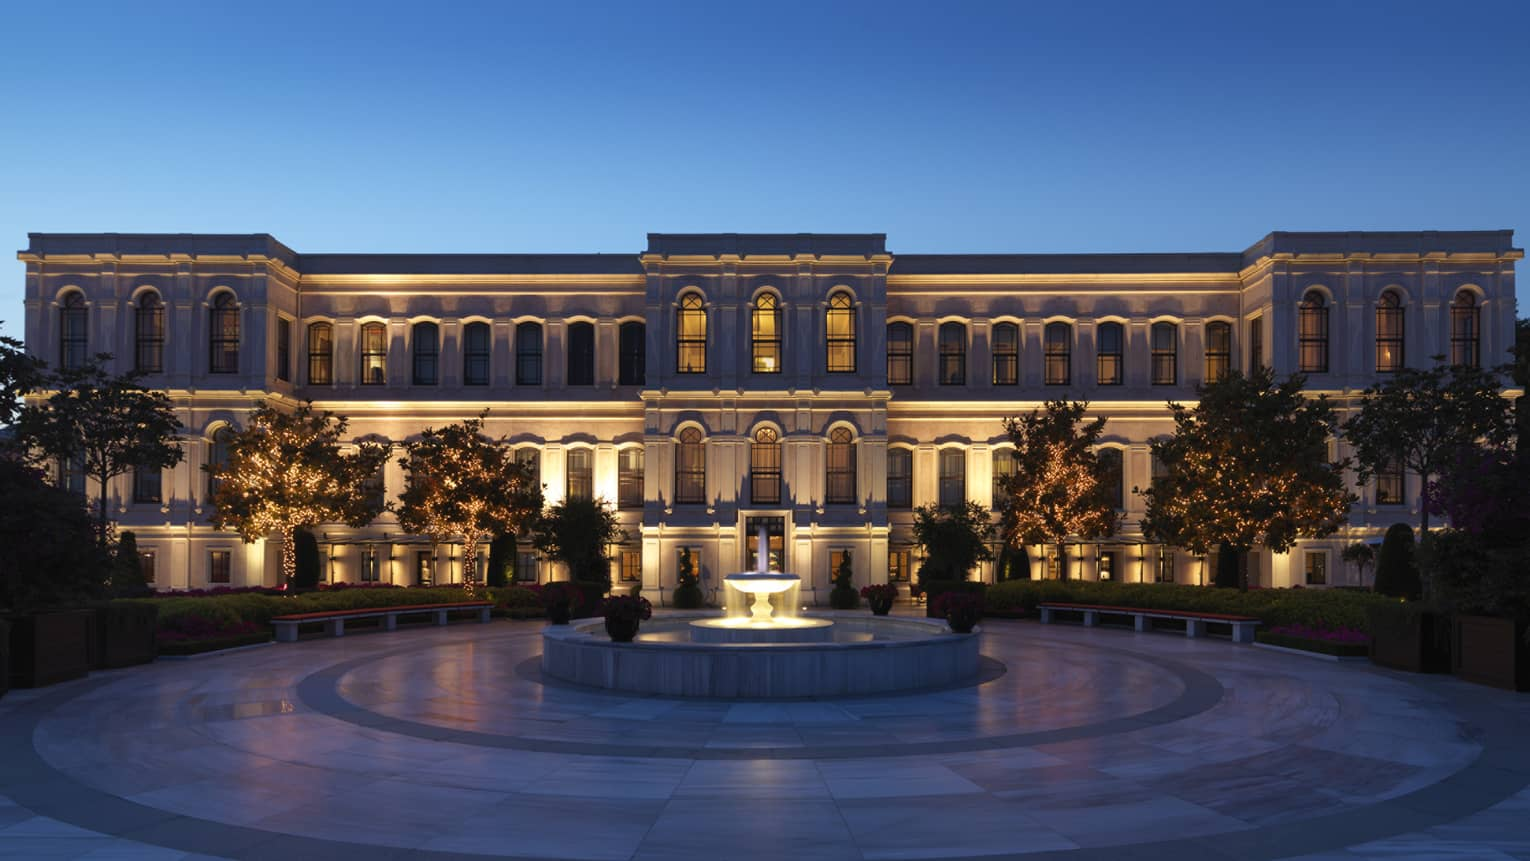 Four Seasons hotel Istanbul at the Bosphorus building exterior, fountain with lights at dusk